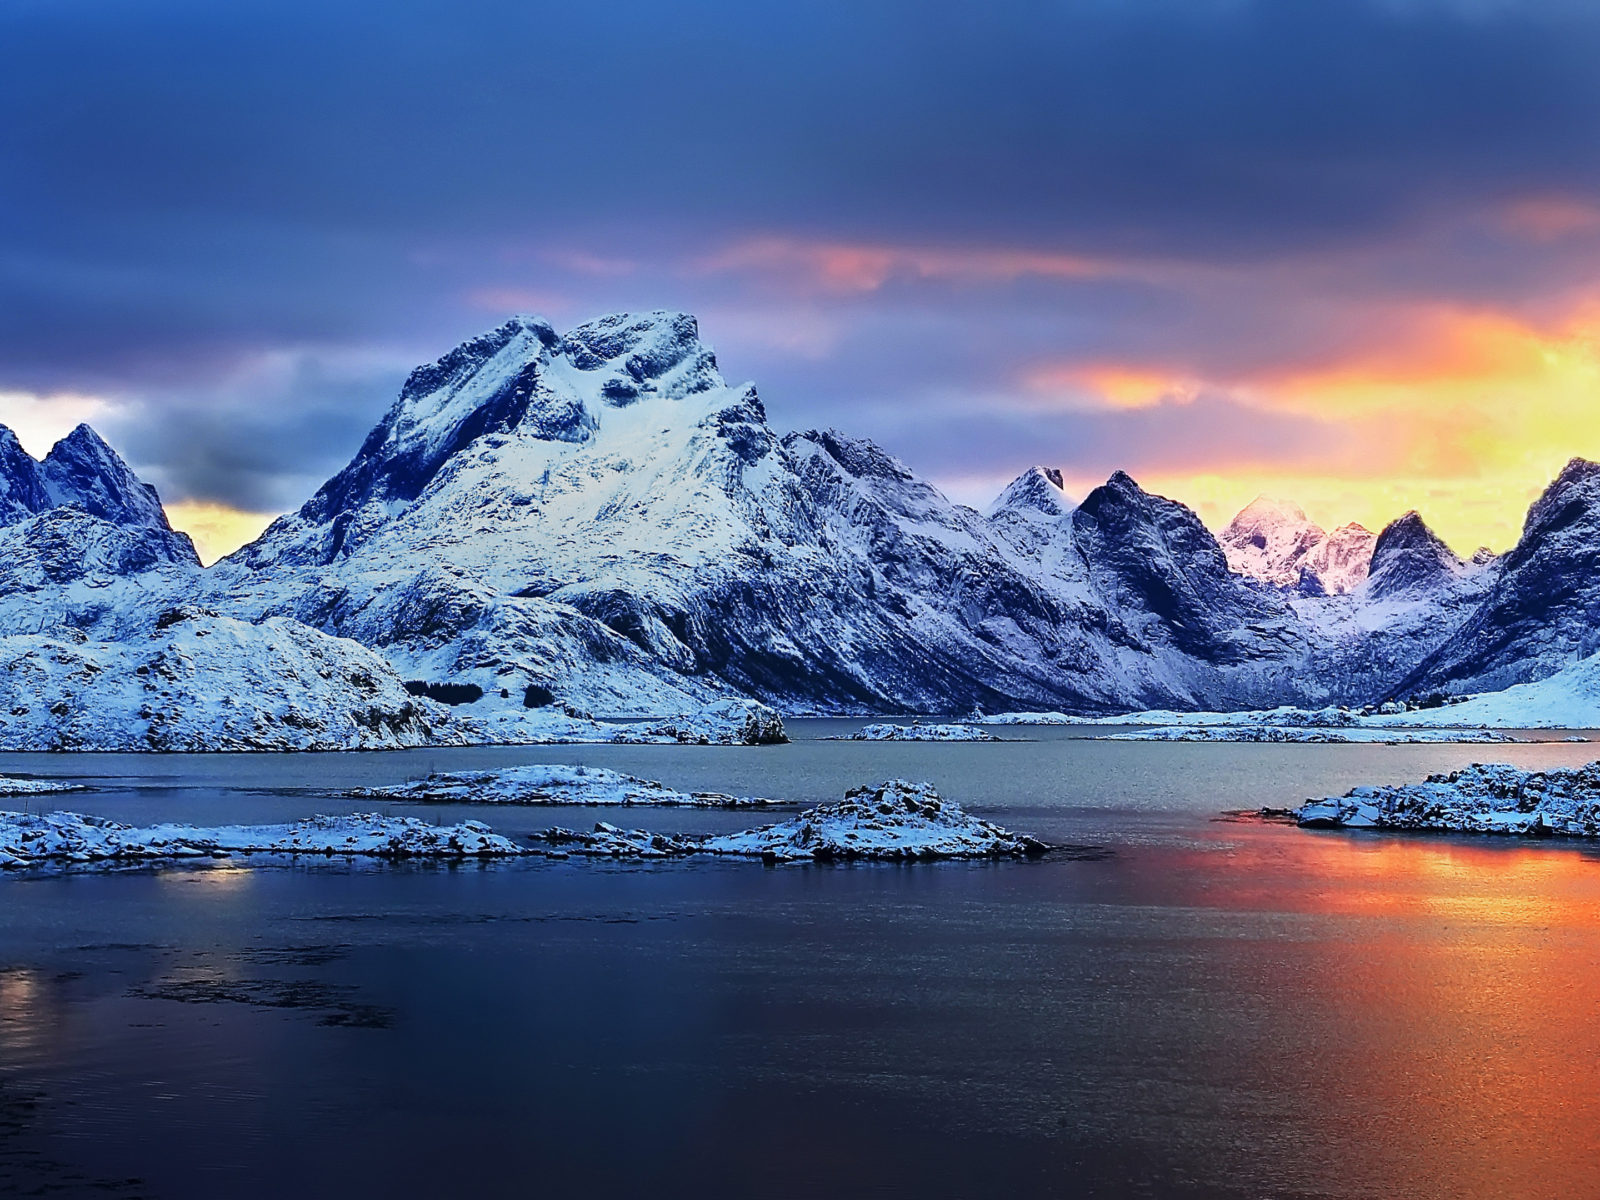 Country Wallpaper Iphone Norway Sunset Snowy Mountains Winter Landscape Hd